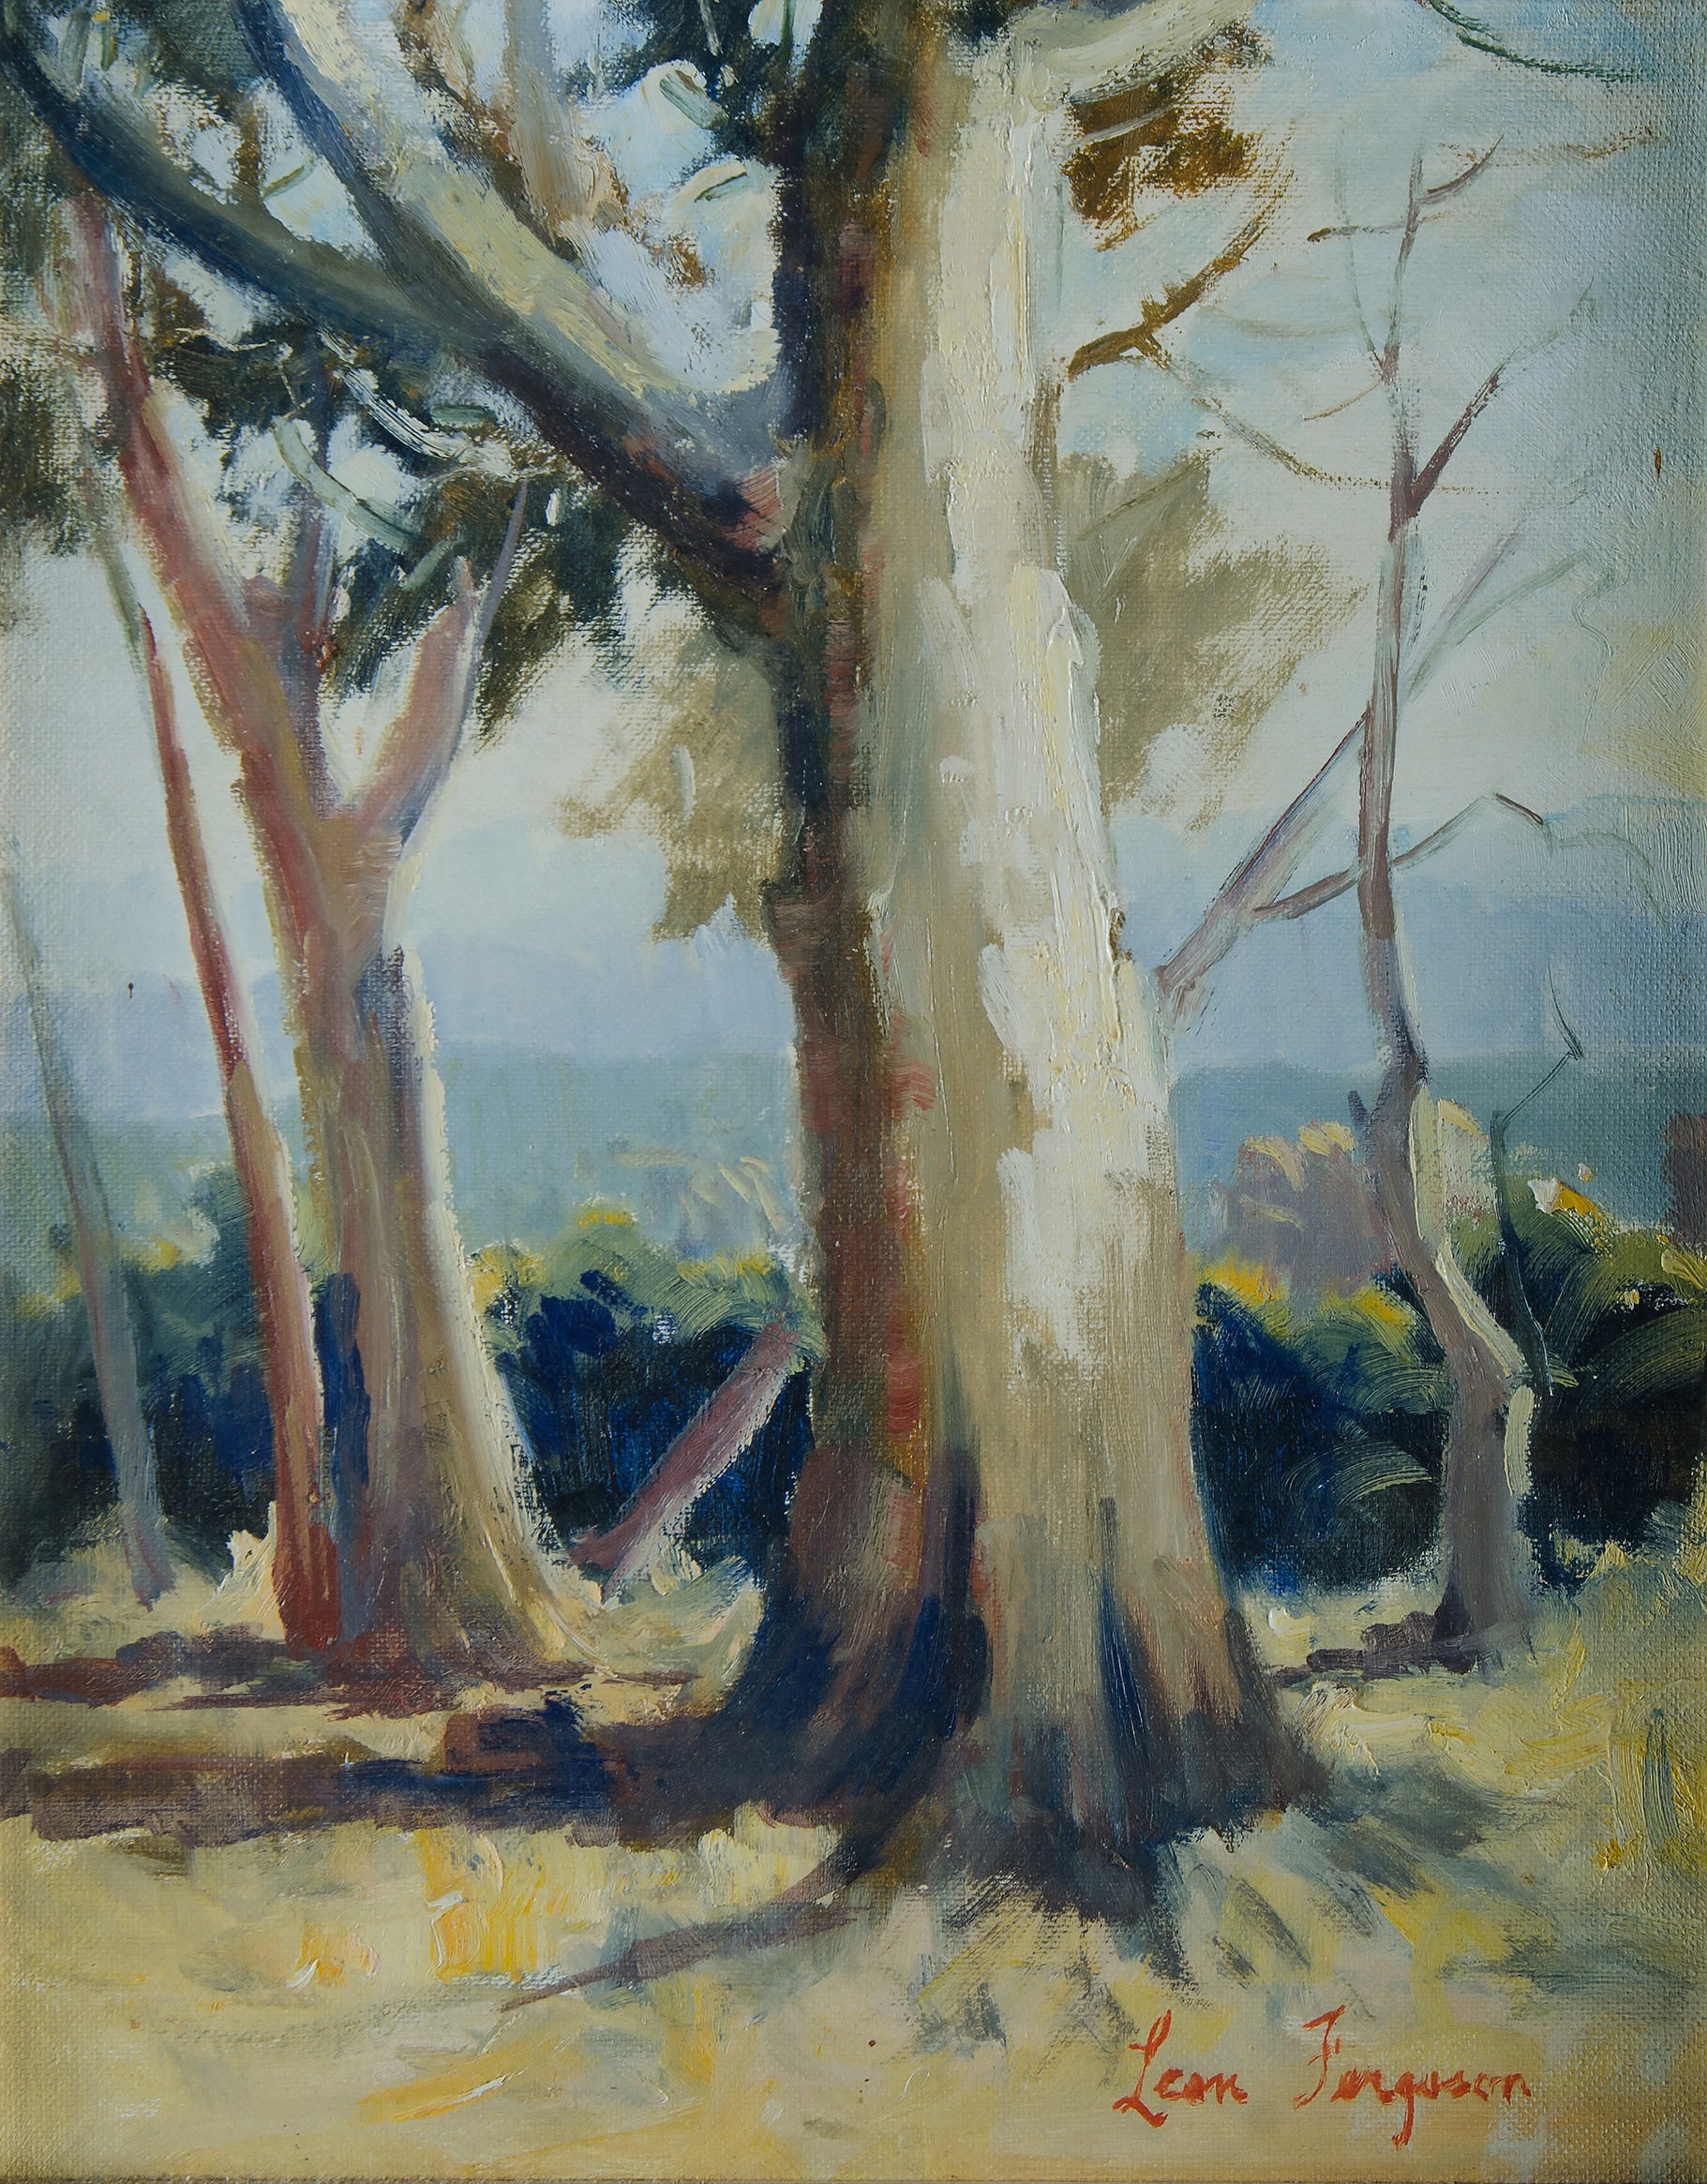 'FERGUSON, Leon (b.1919): Gum Trees in a Clearing Oil on Canvas Board'